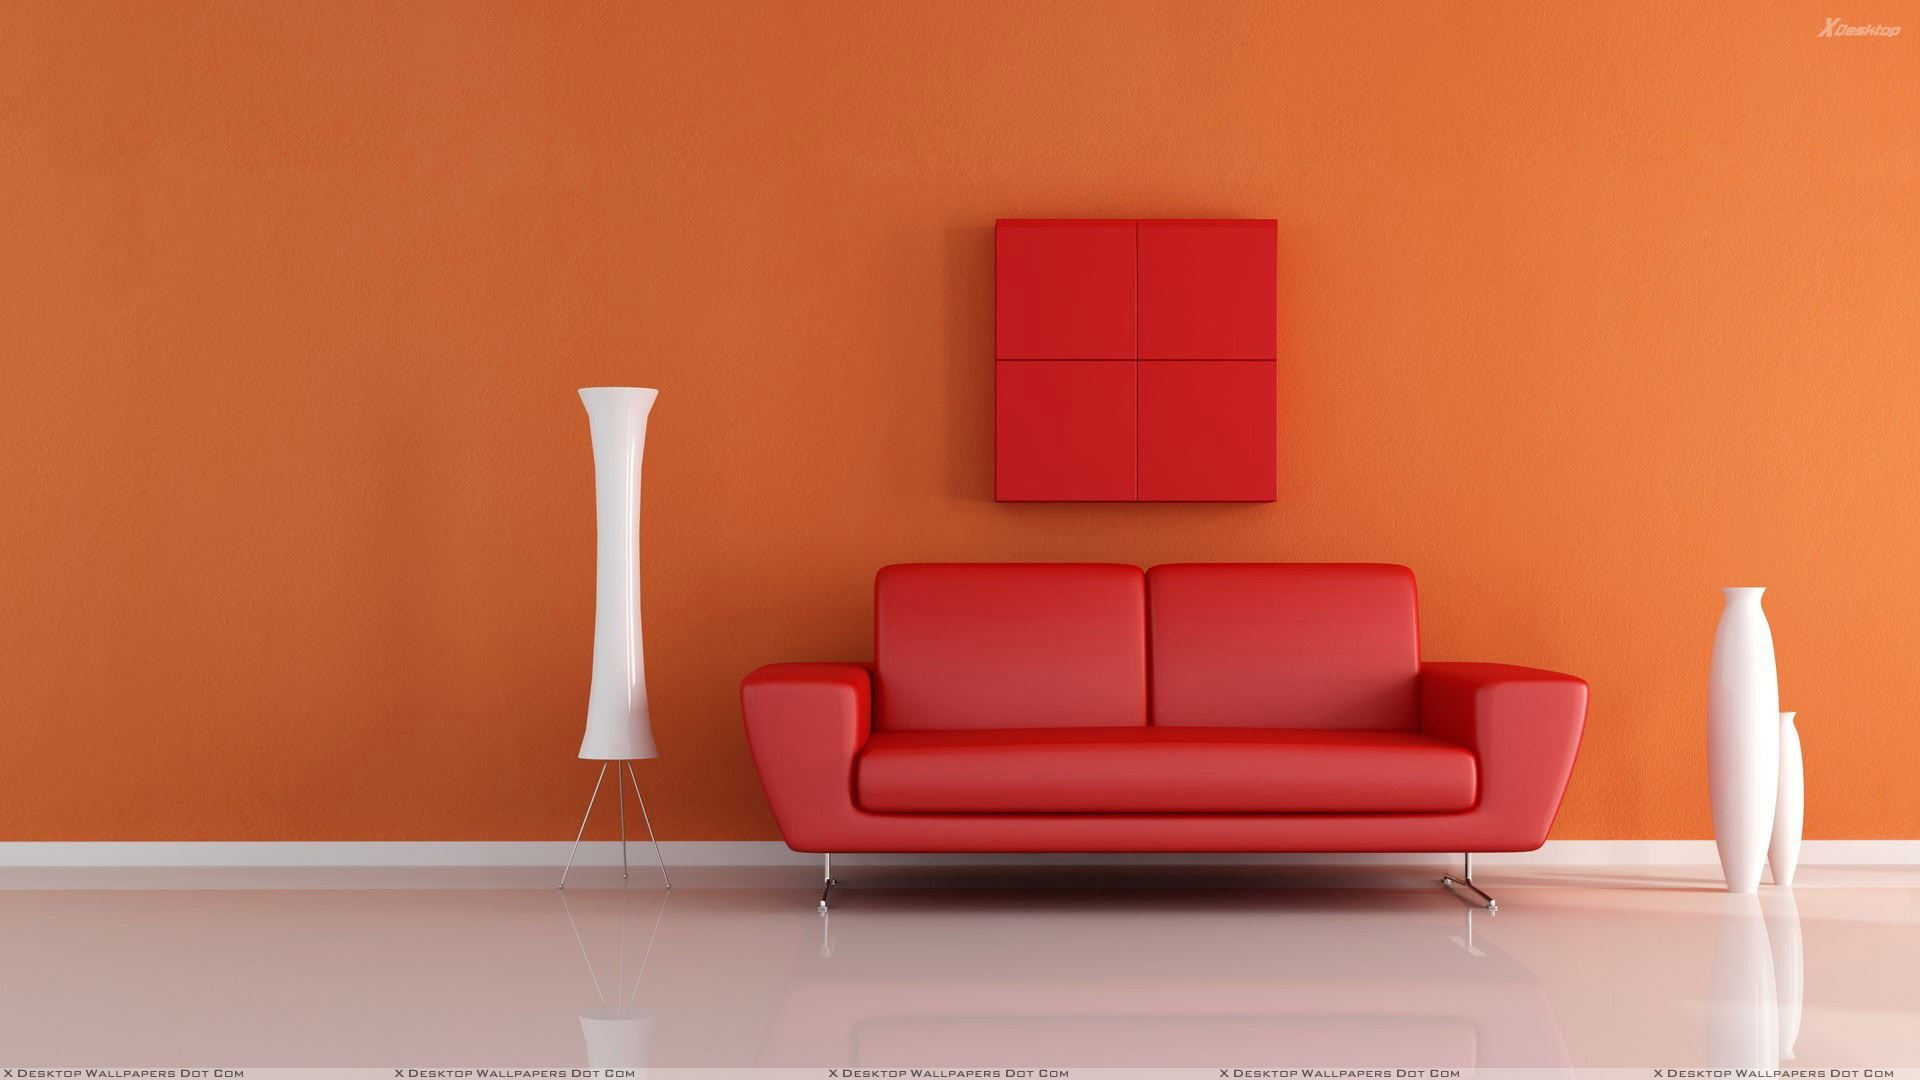 Red sofa near white vase n orange background wallpaper for Wallpaper on walls home decor furnishings